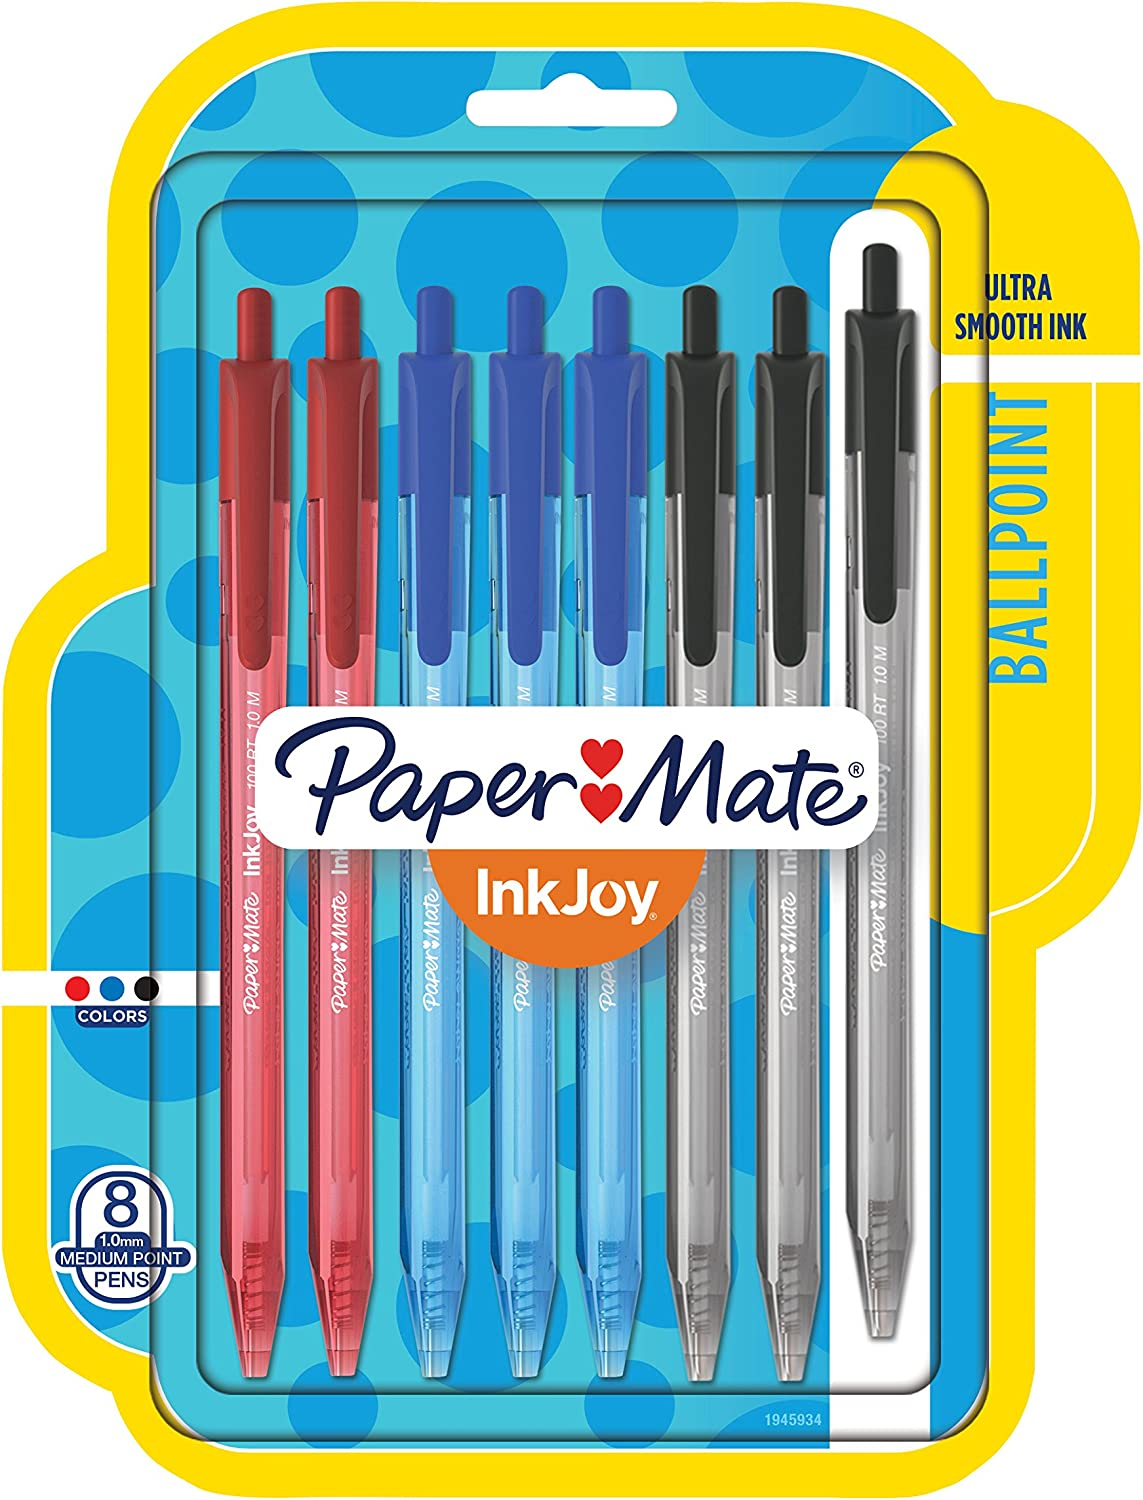 Papermate Inkjoy  Retractable Ballpoint Pens 4 pack Blue Black Red comfort grip